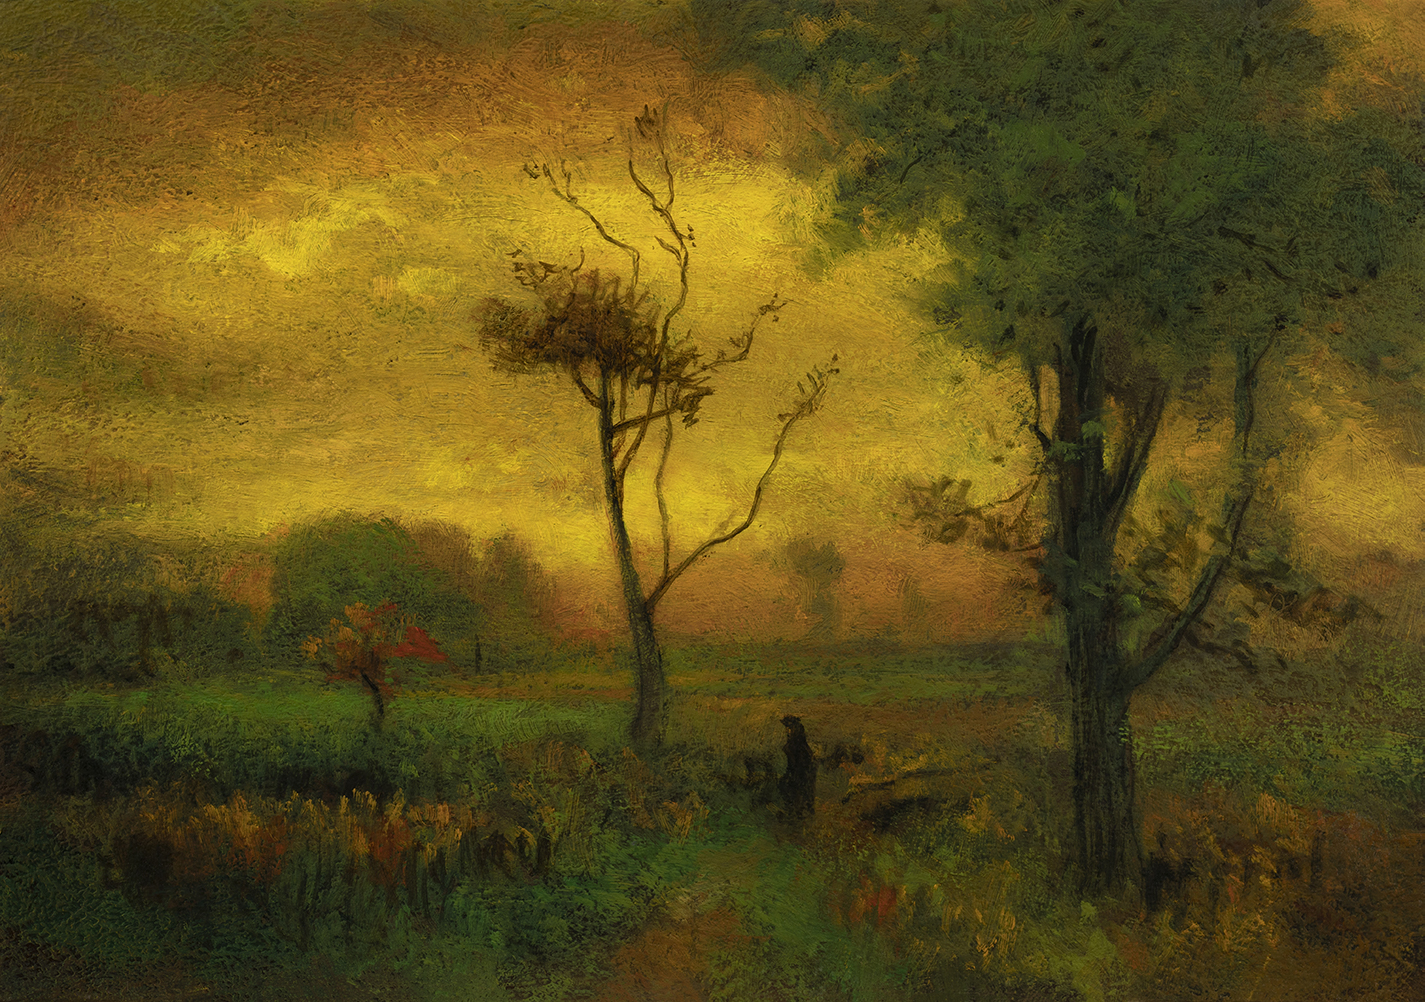 Study after George Inness 'Sunrise' by M Francis McCarthy - 7x10 Oil on Wood Panel